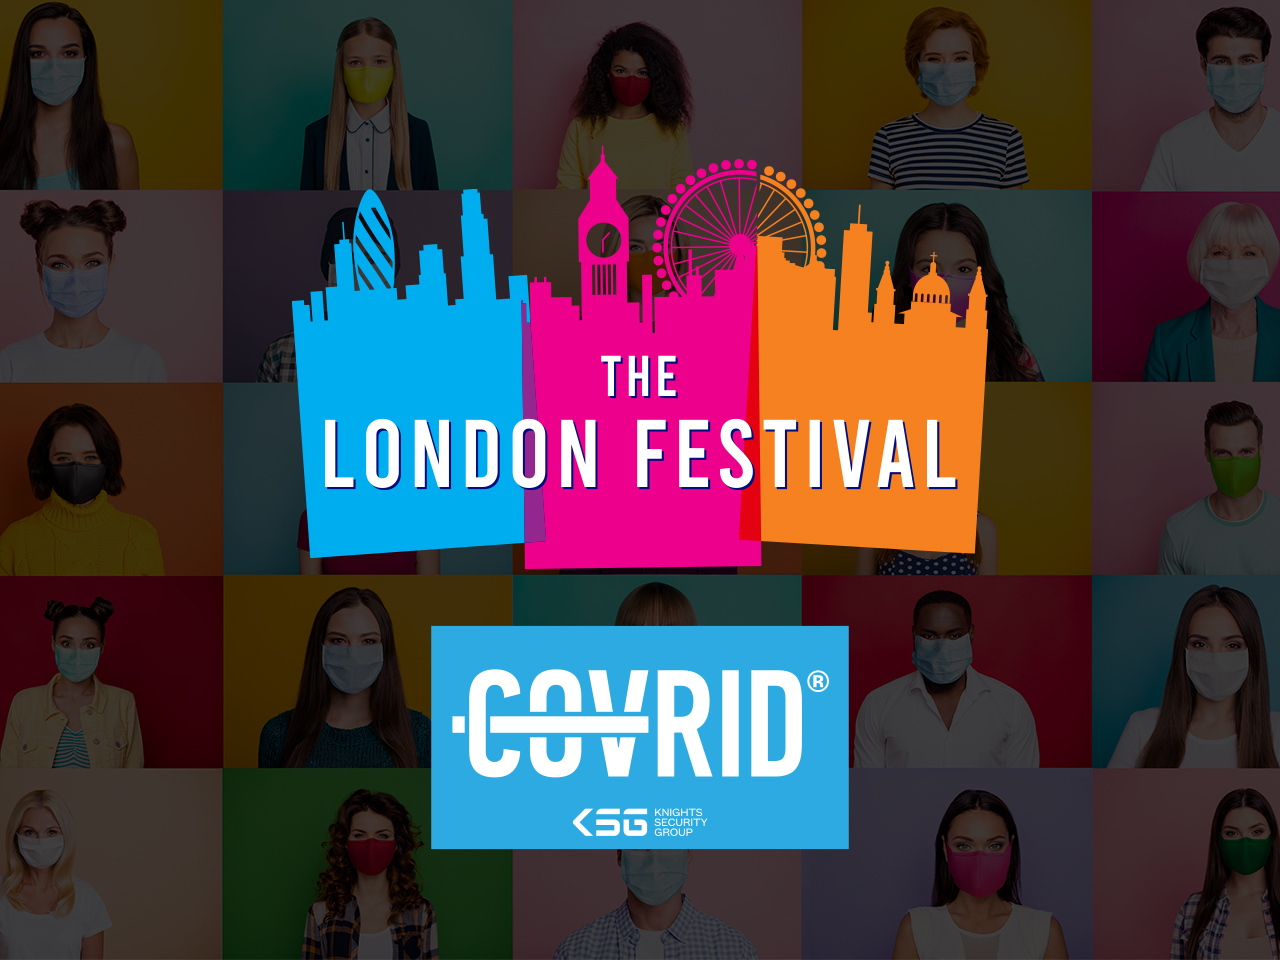 New partnership between The London Festival and Knights Security Group sets gold standard for Covid secure events.